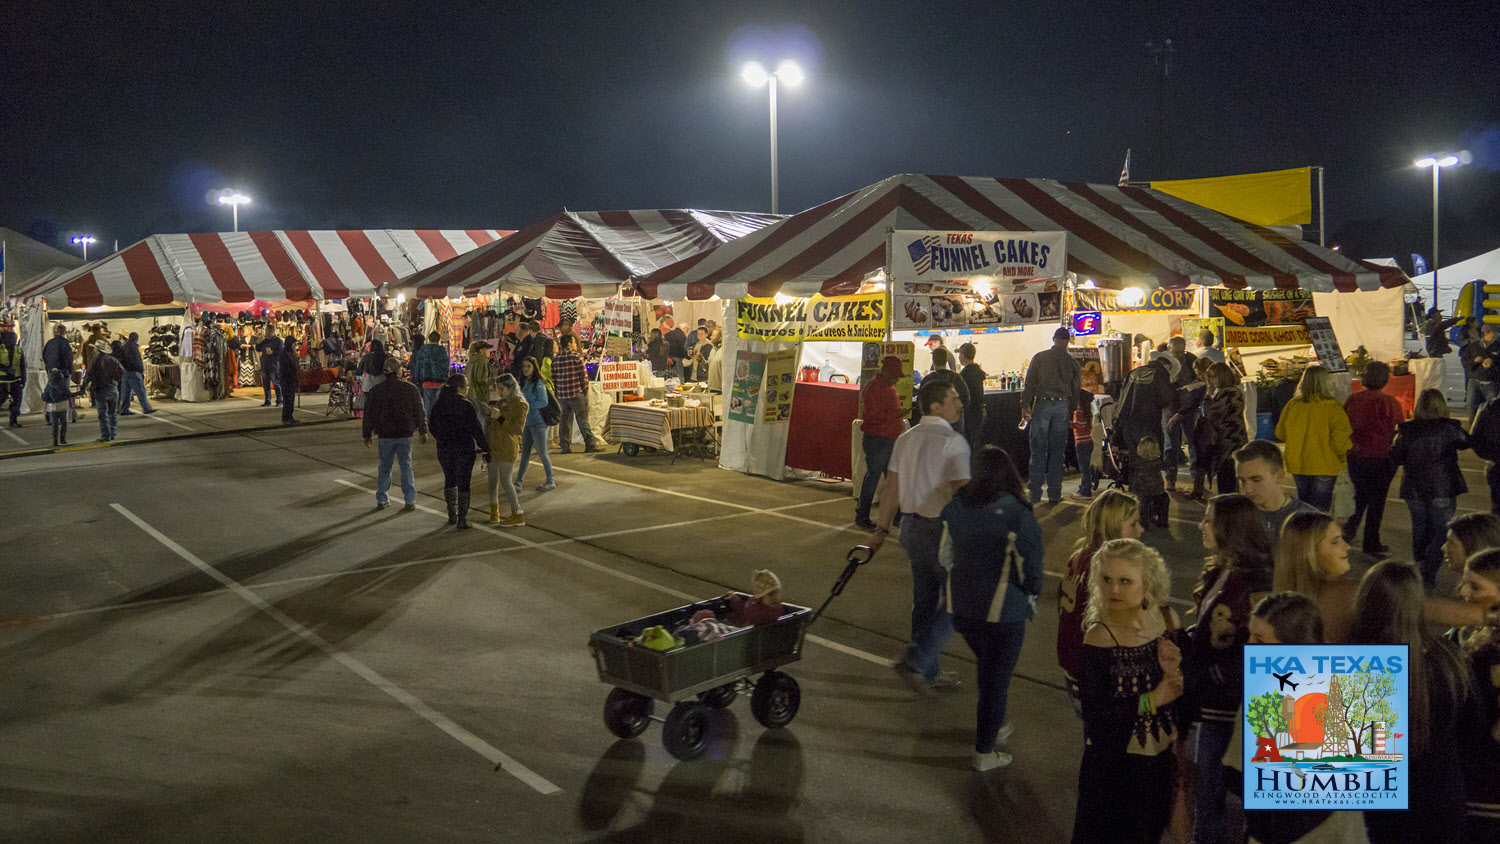 Humble Rodeo Bbq Cook Off Photos 1 30 2015